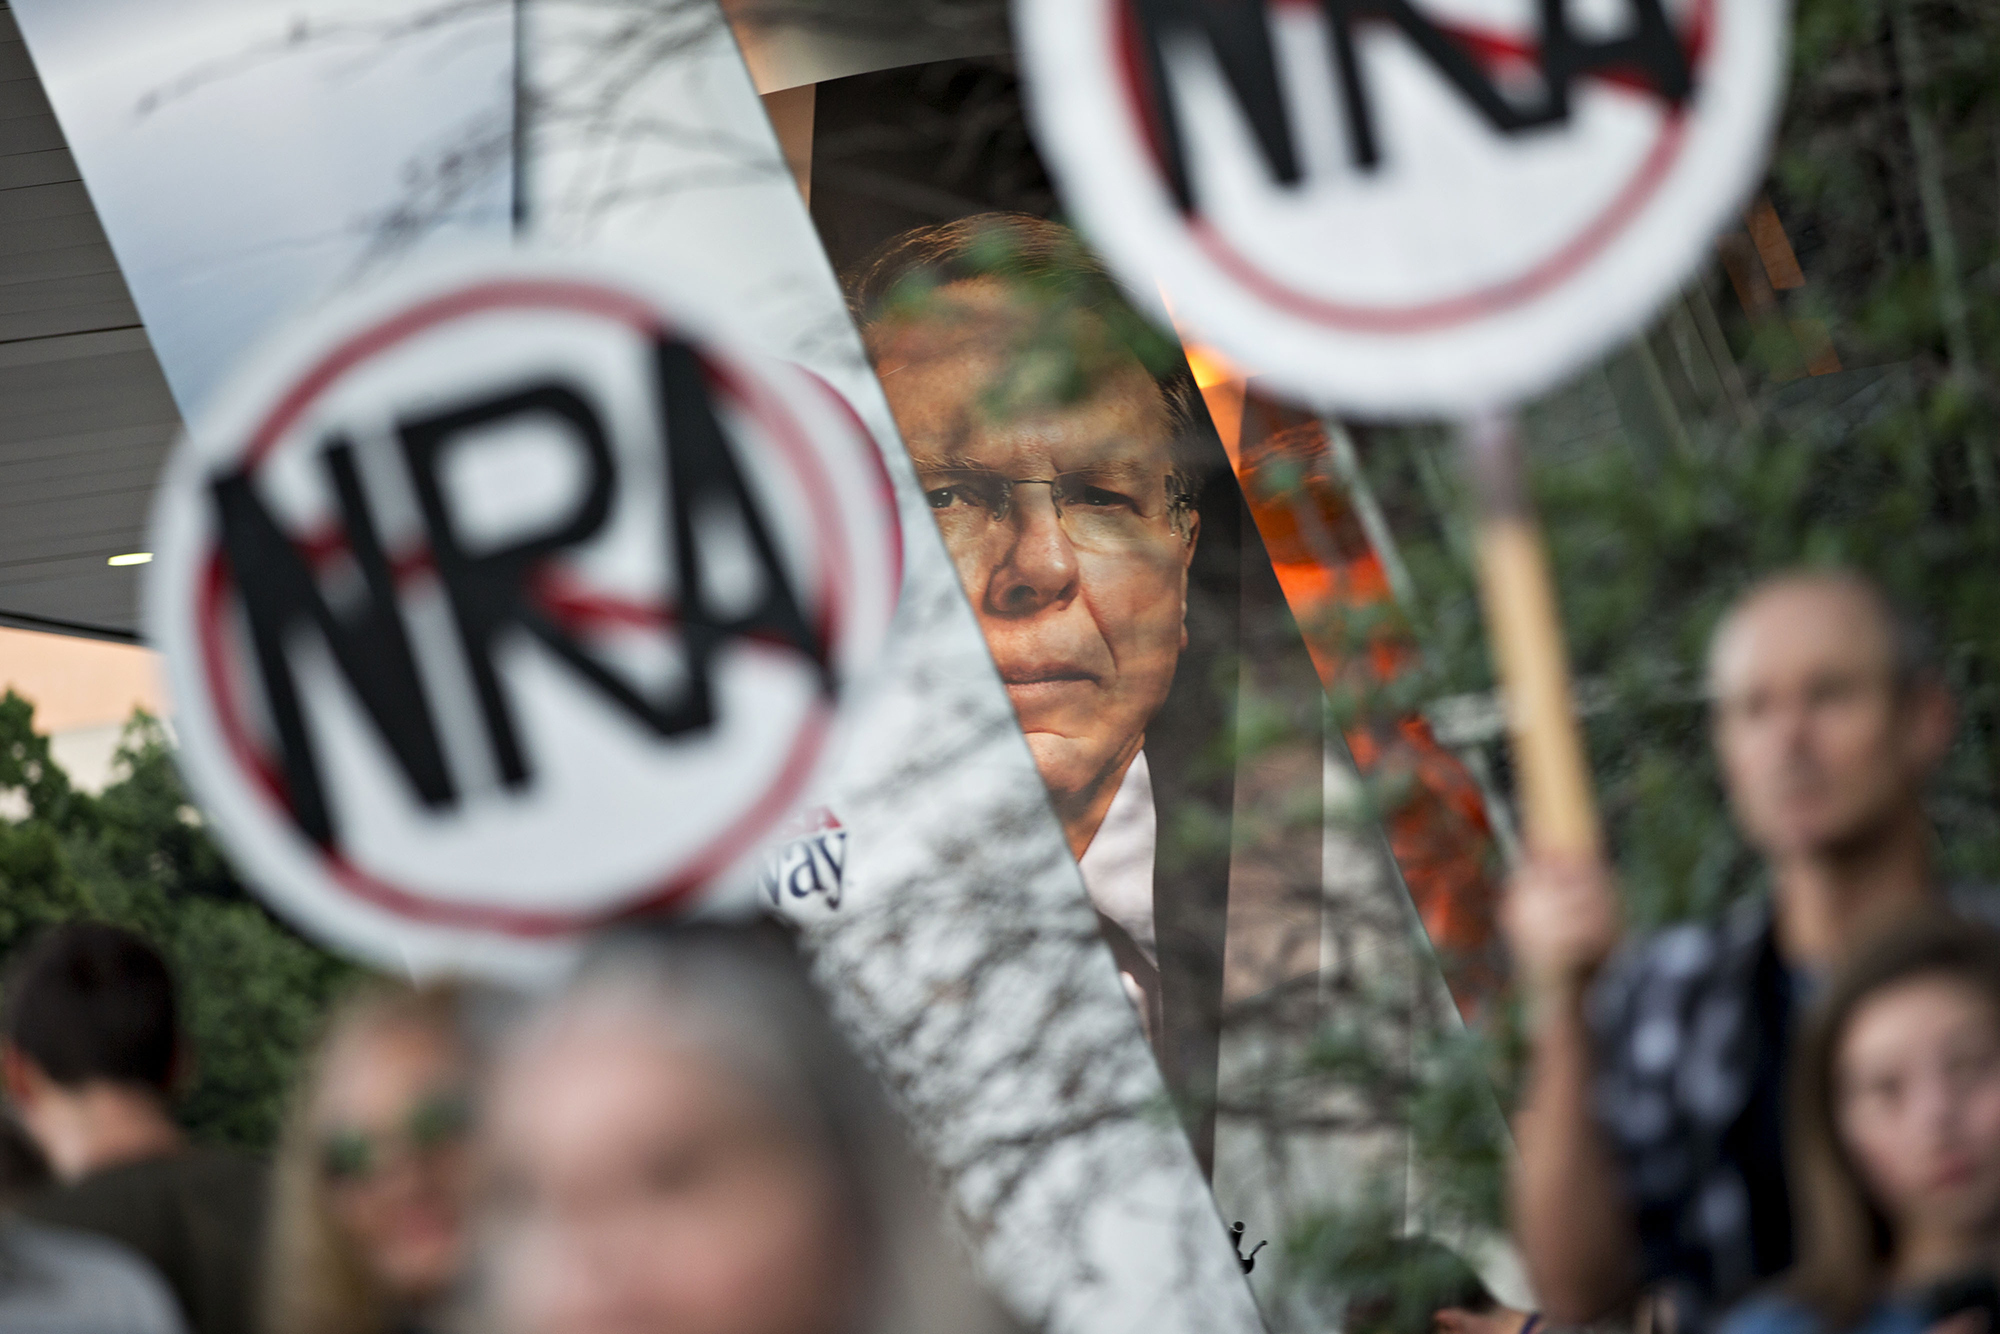 A Trauma Surgeon Who Survived Gun Violence Is Taking On The NRA